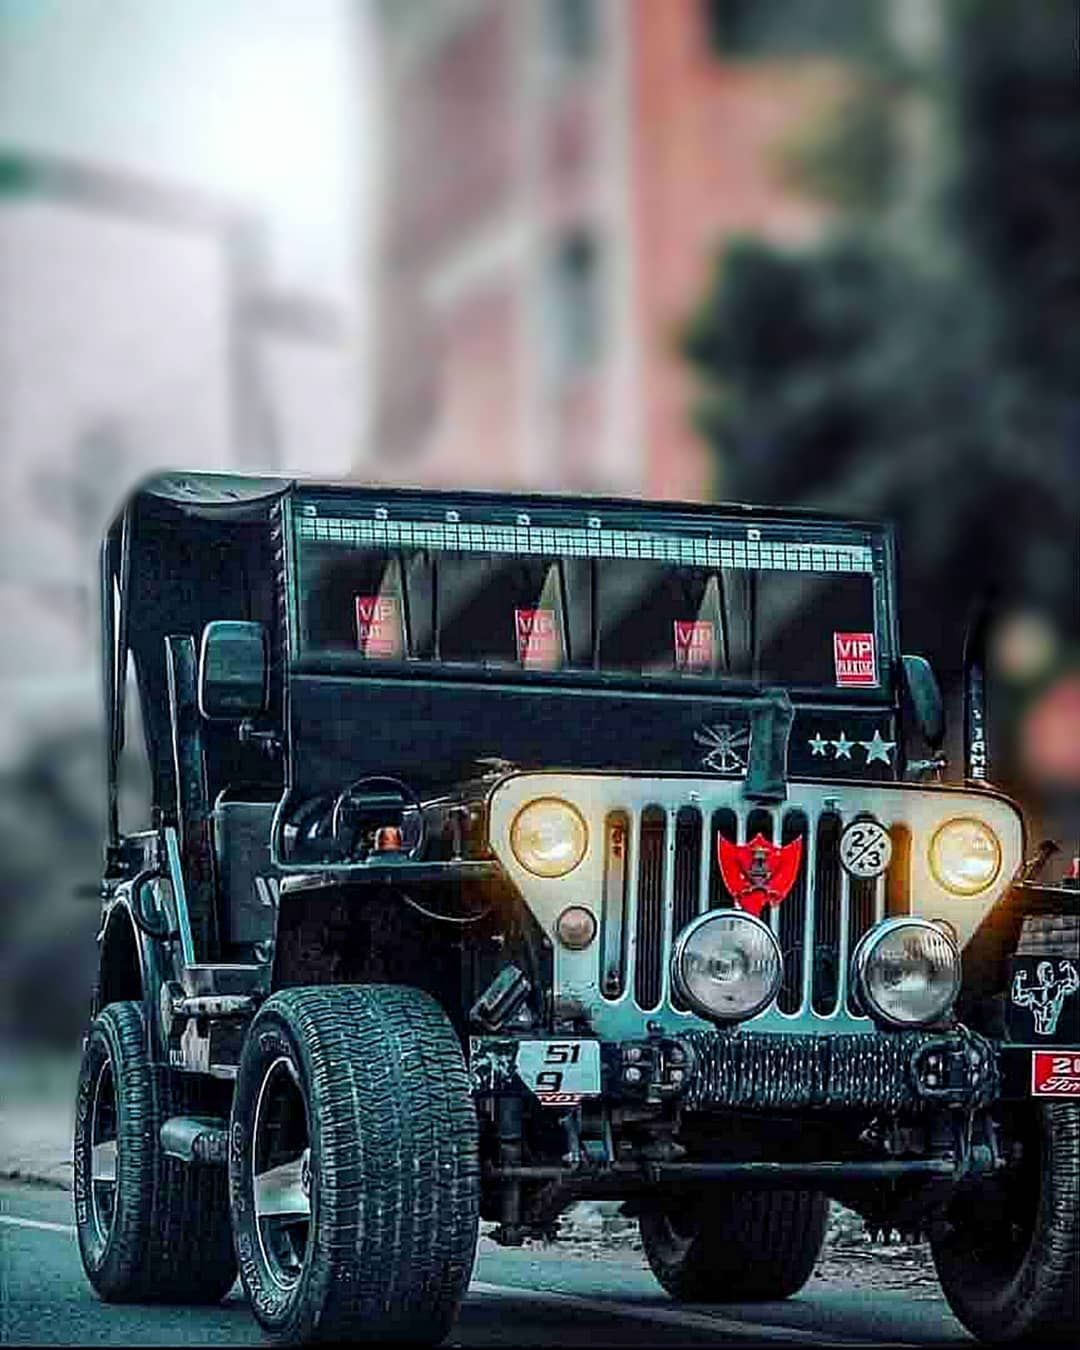 Cb Jeep Editing Picsart Background In 2020 Best Hd Background Photoshop Digital Background Picsart Background